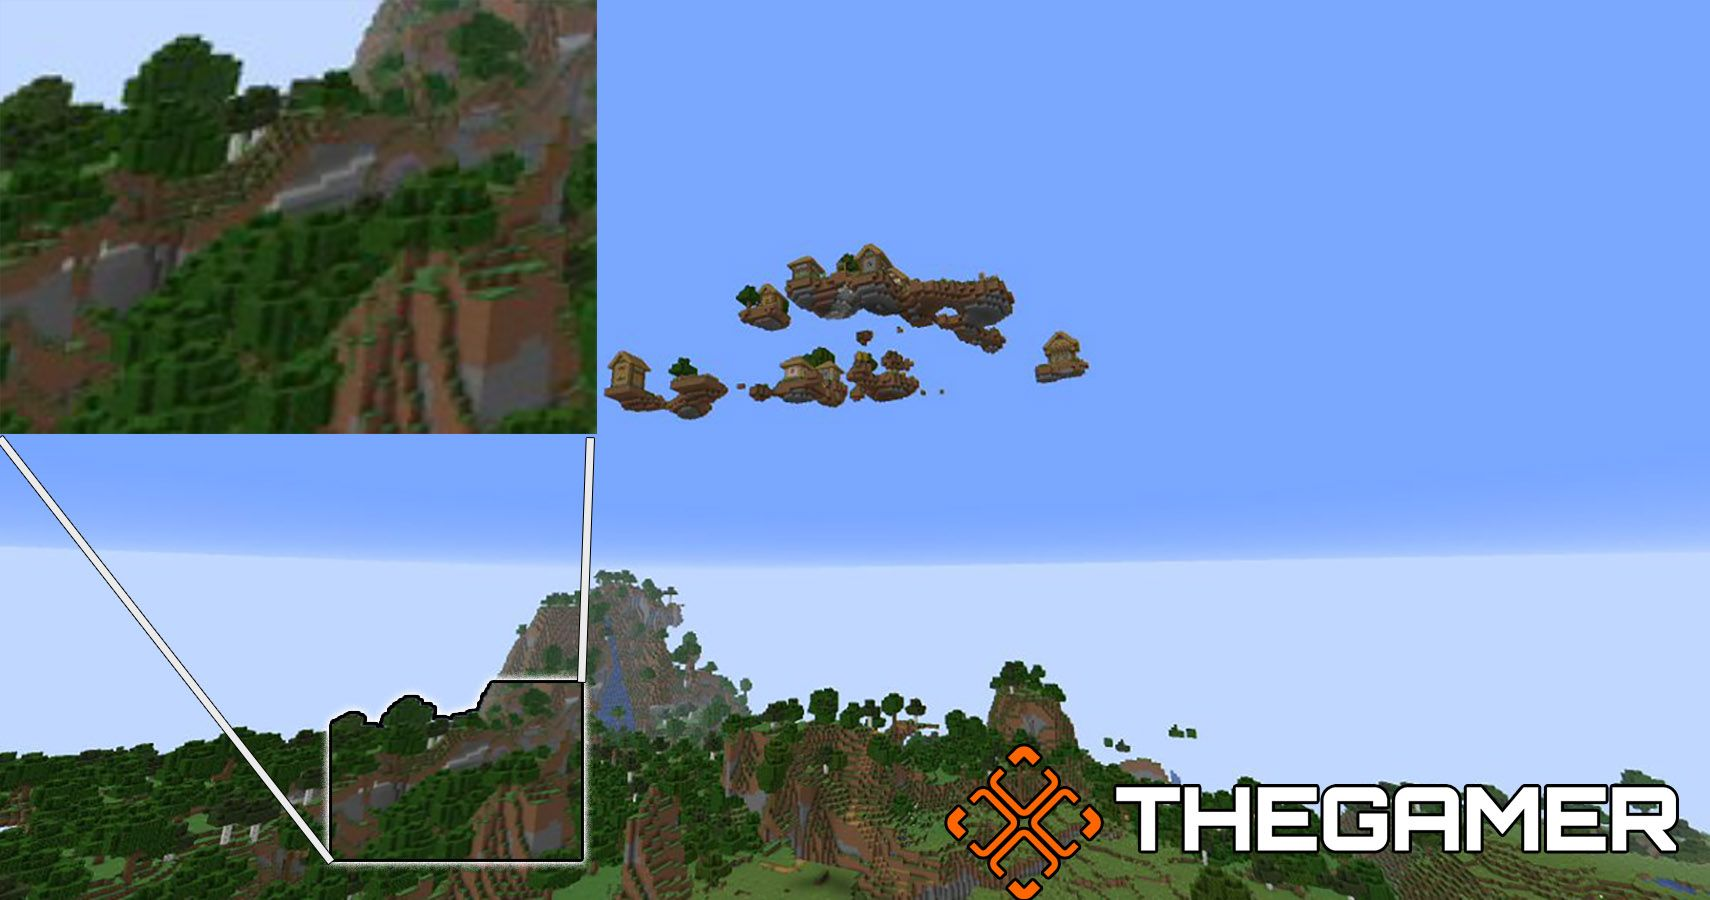 Minecraft 1.17 May Introduce Rock Layers